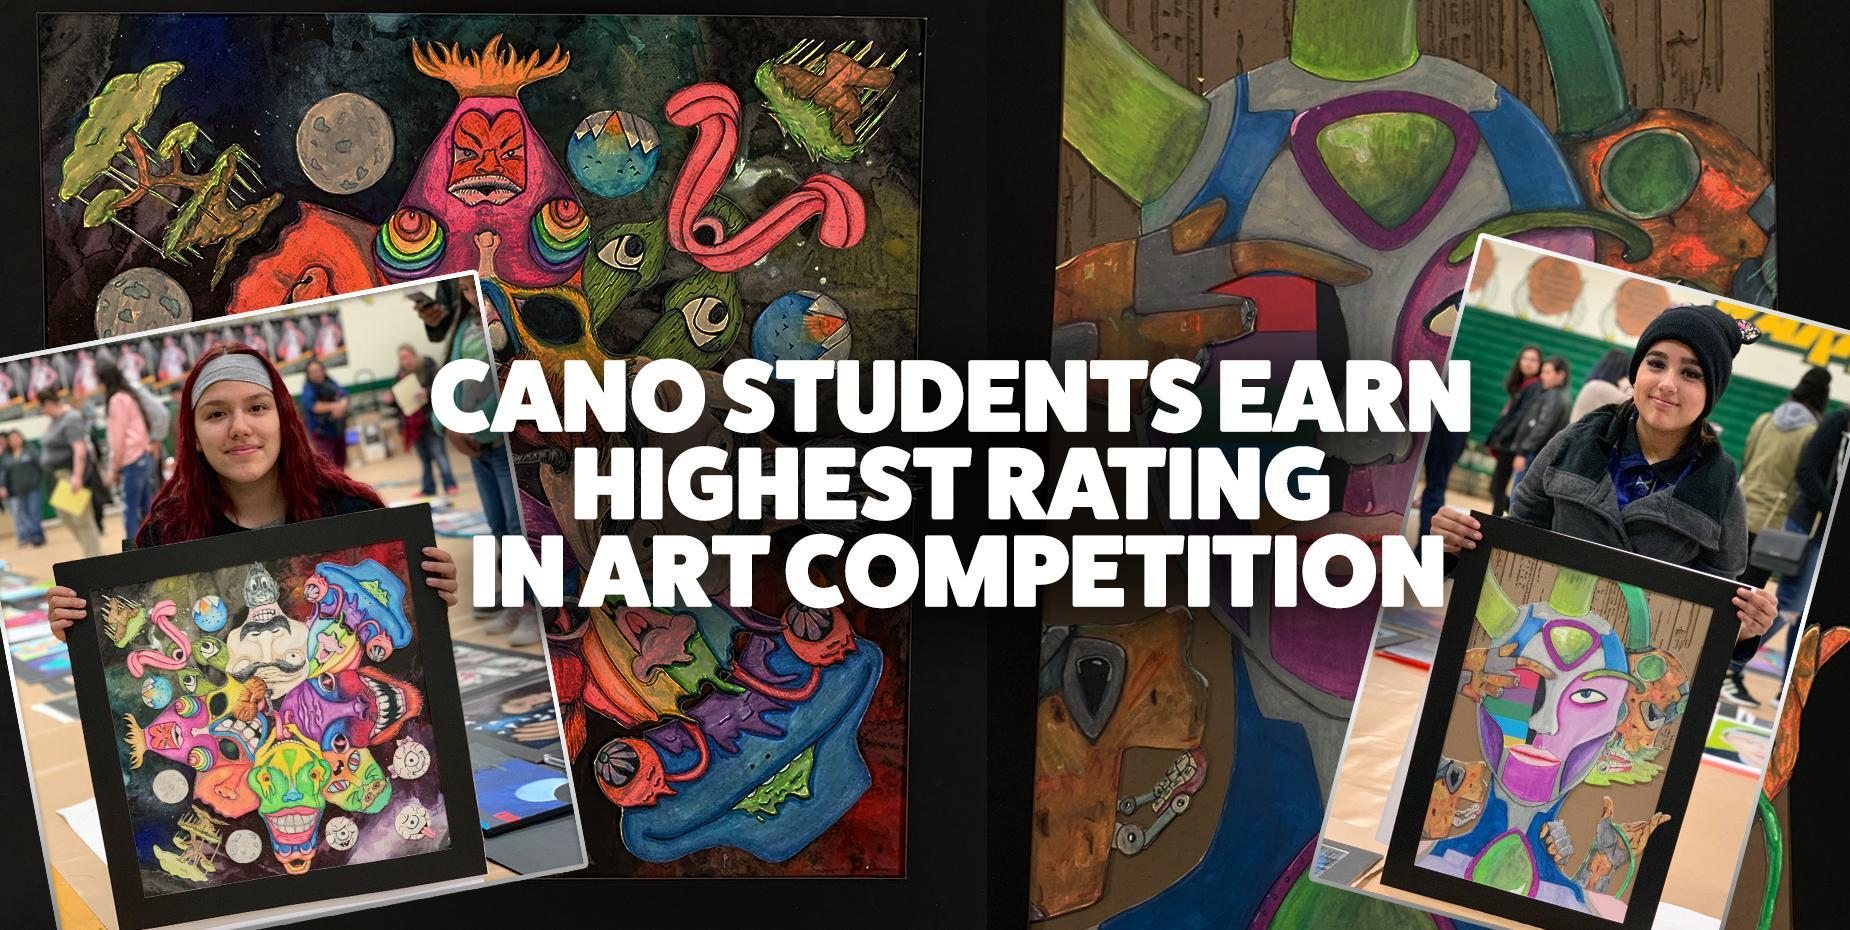 Cano Students Earn Highest Rating in Art Competition